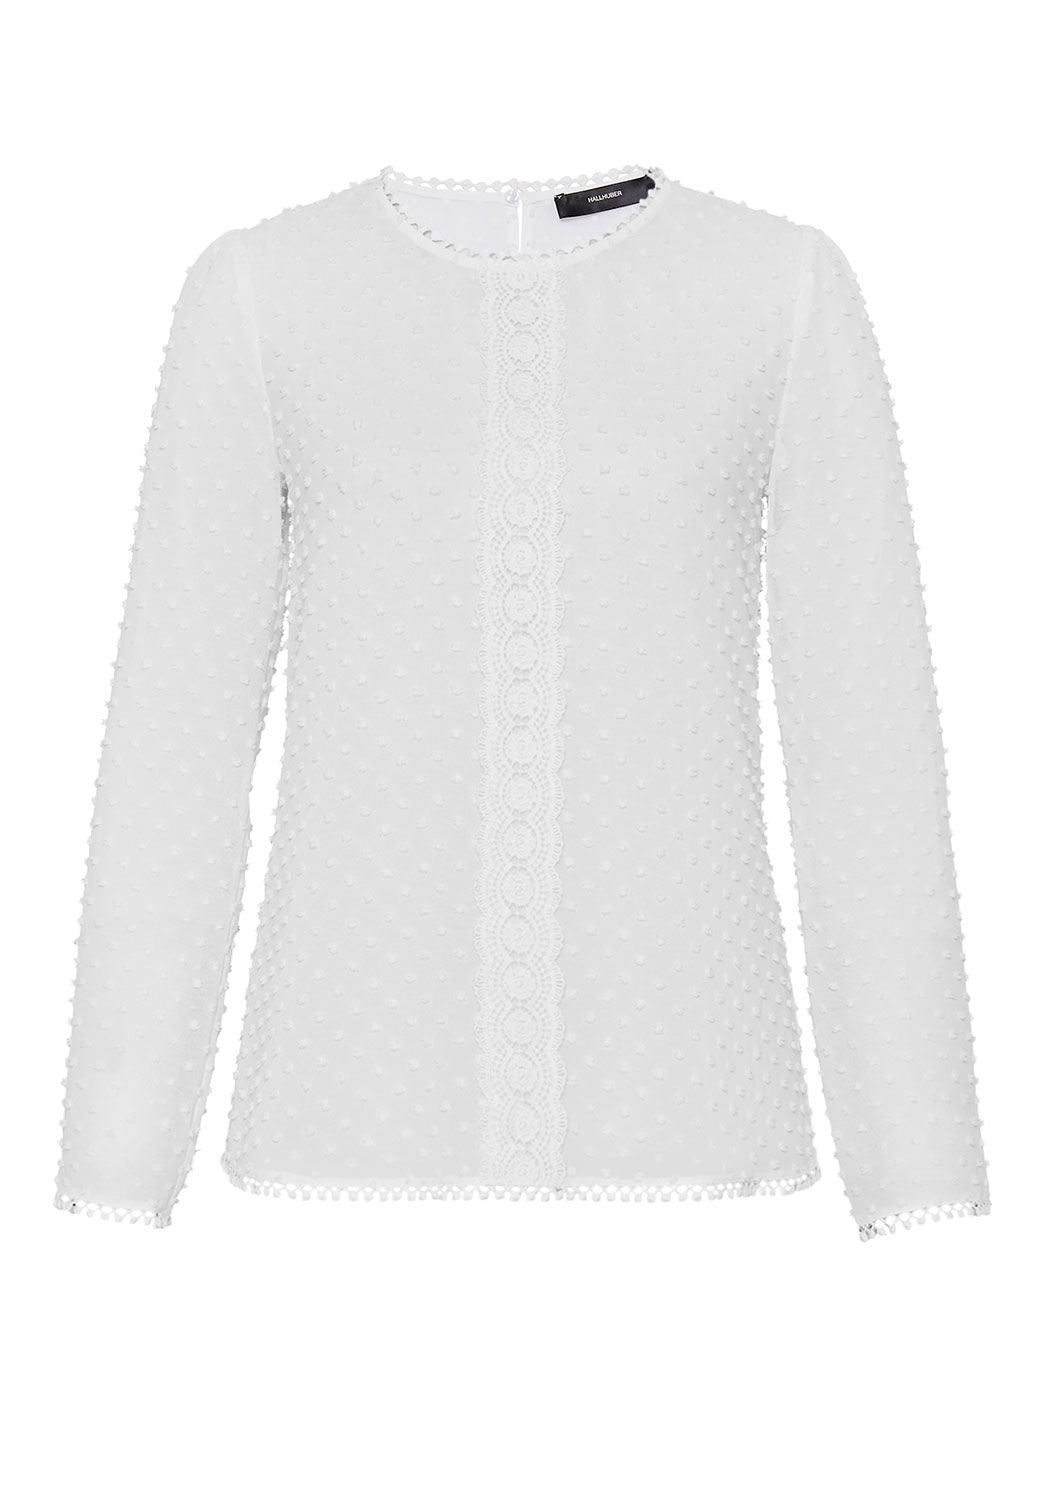 Hallhuber Hallhuber Blouse with embroidered polka dots, White